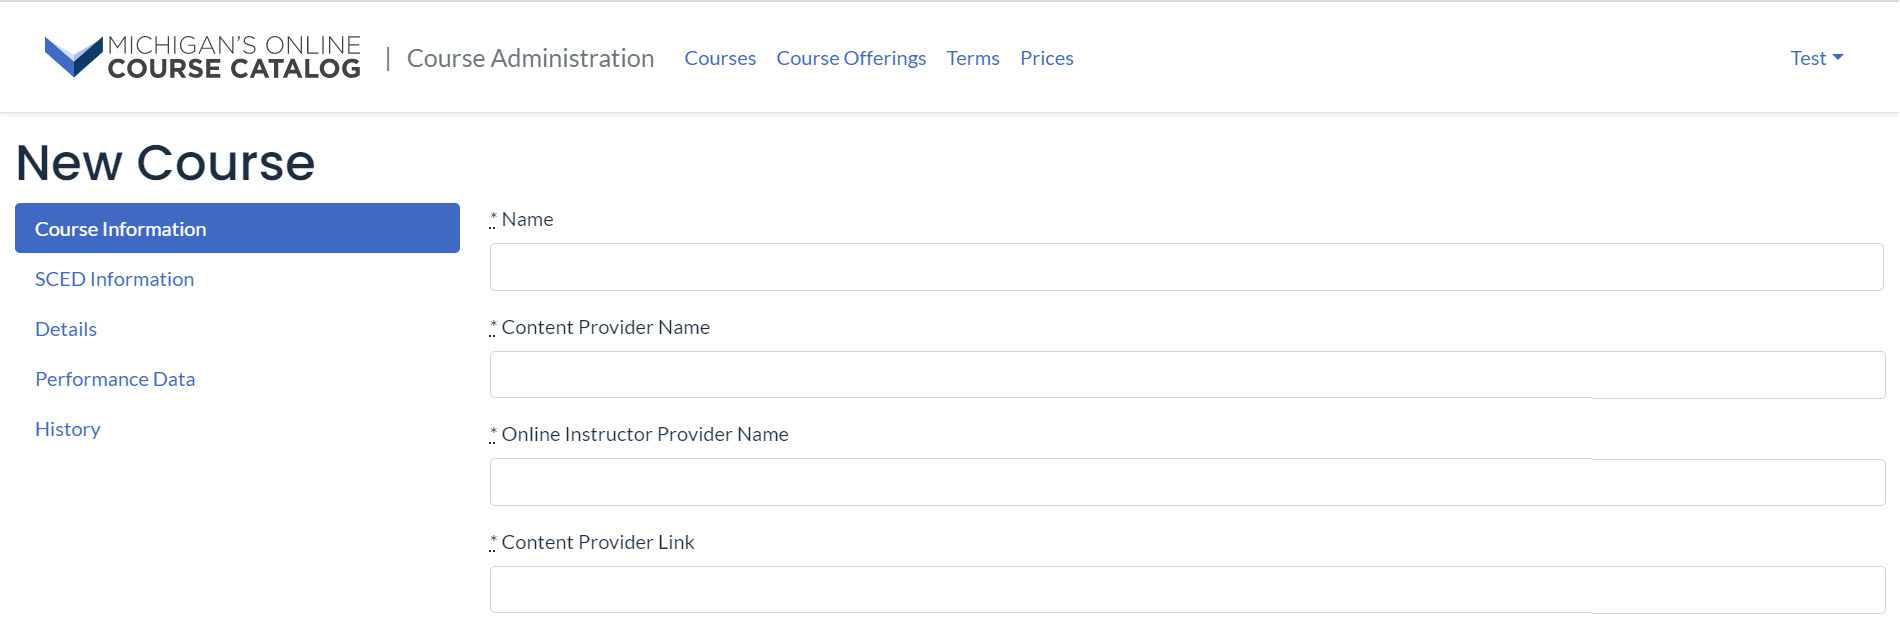 Image of the New Course Page that defaults to the Course Information menu option.